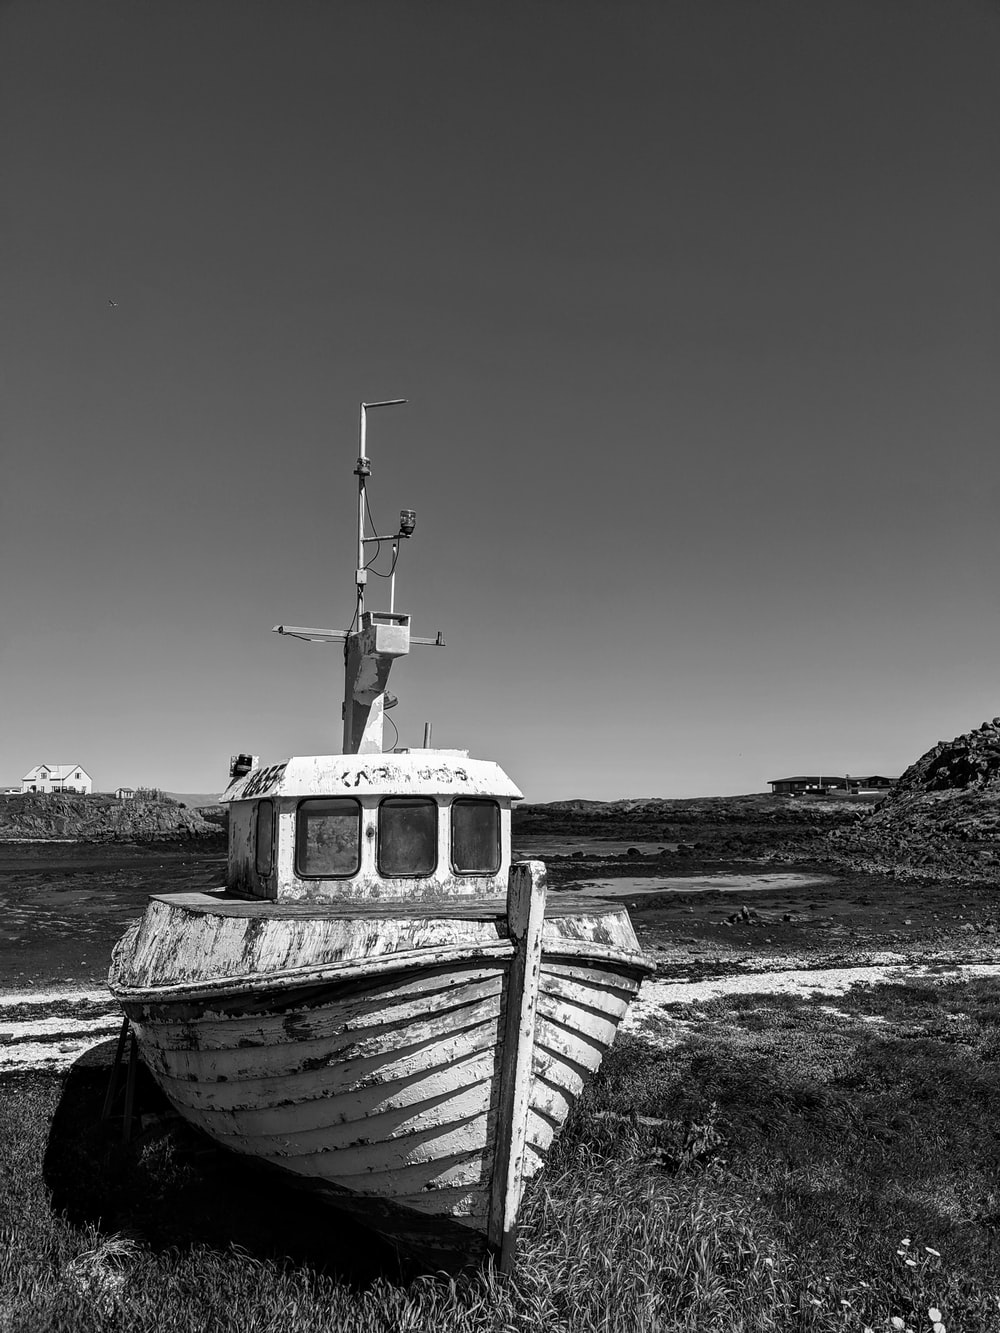 grayscale photo of boat on beach